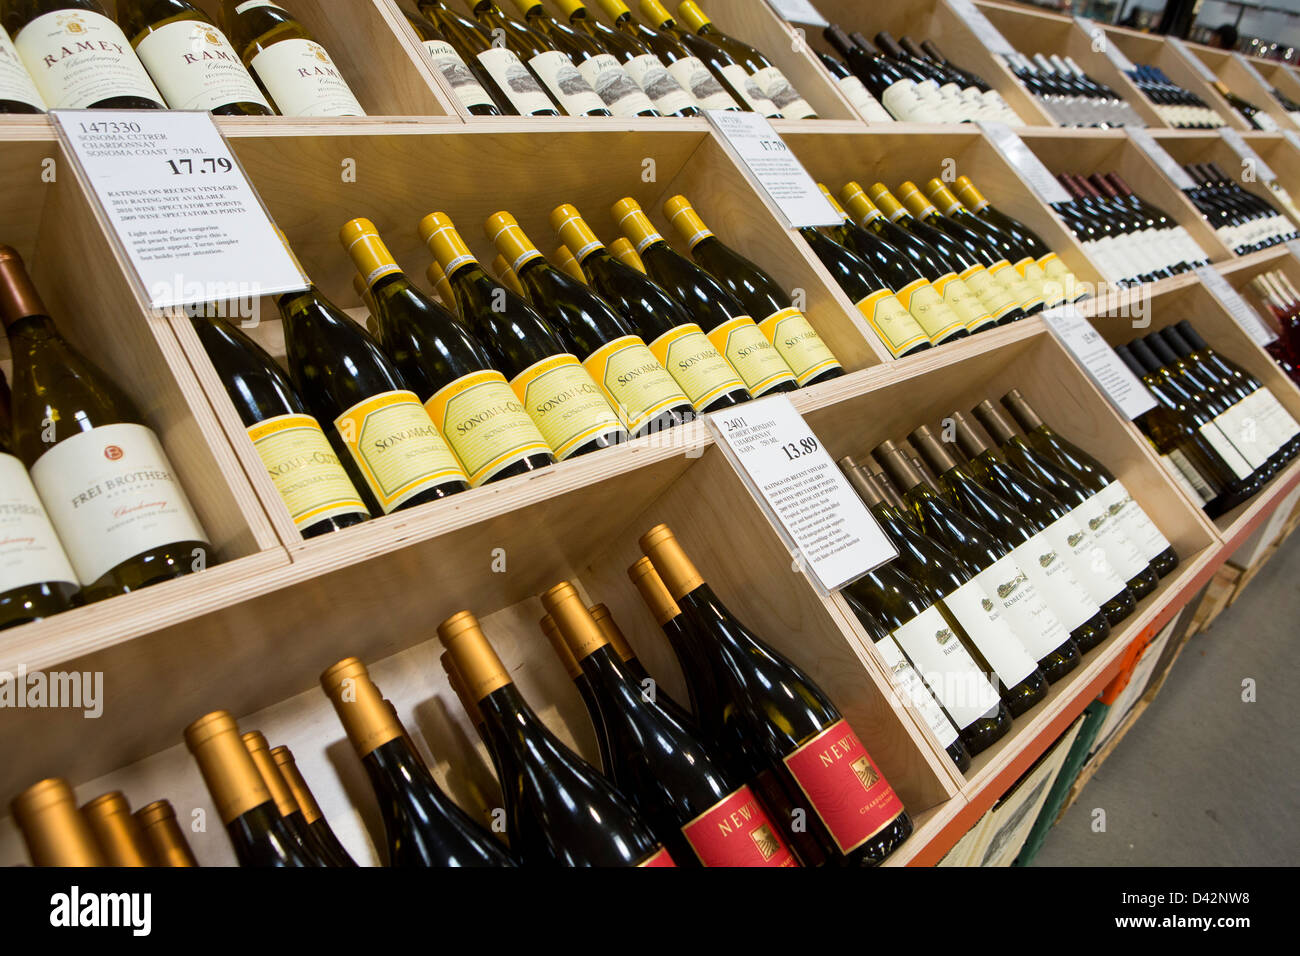 Wine on display at a costco wholesale warehouse club stock photo wine on display at a costco wholesale warehouse club stock photo 54150804 alamy thecheapjerseys Images